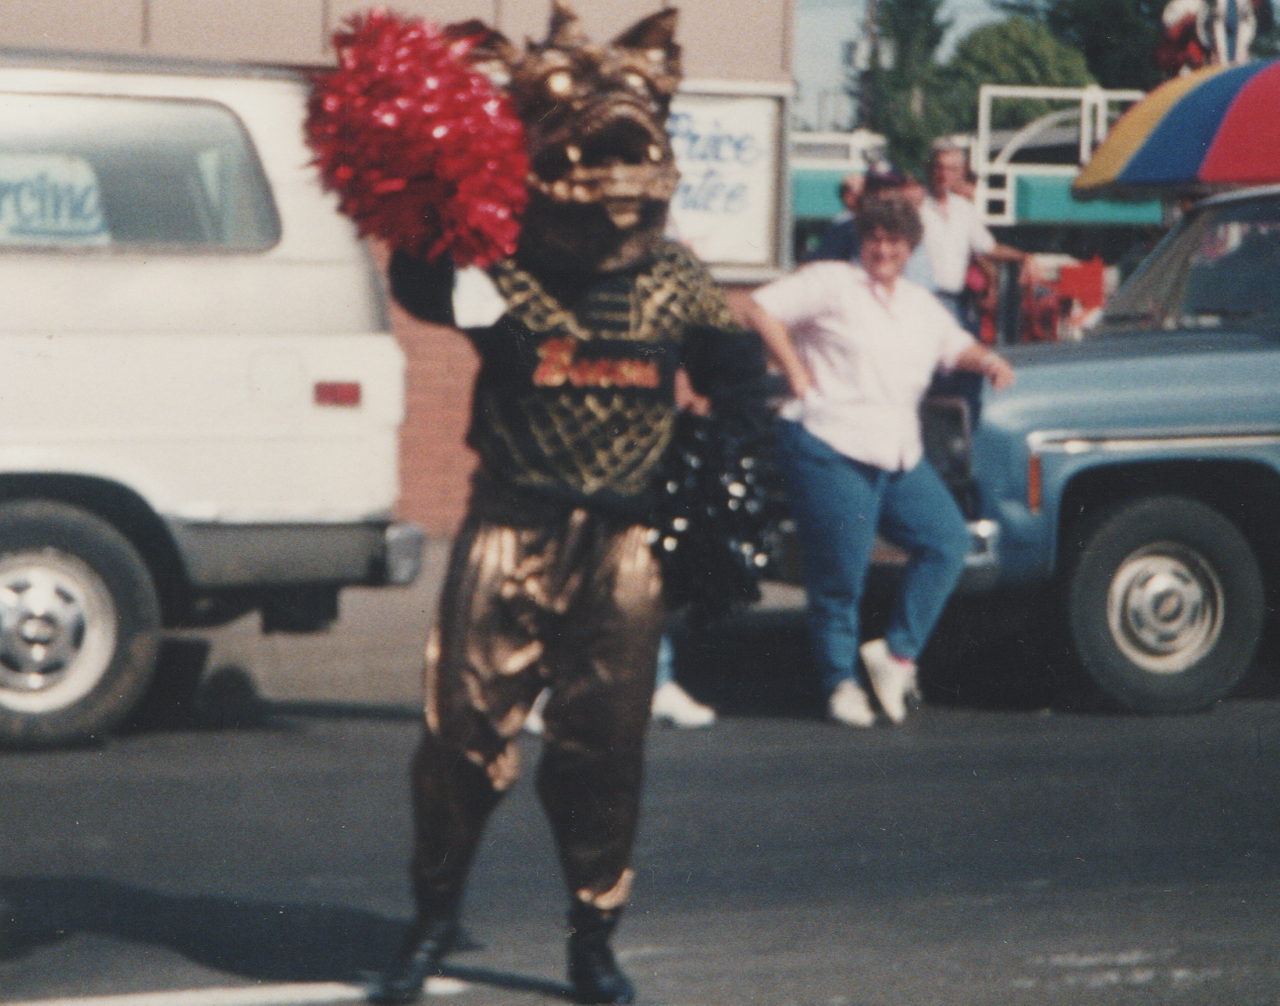 1992-09 - Fair in Forest Grove, parade, rides, Katie, Rick, Joey, Crystal, by Marilyn-07.png